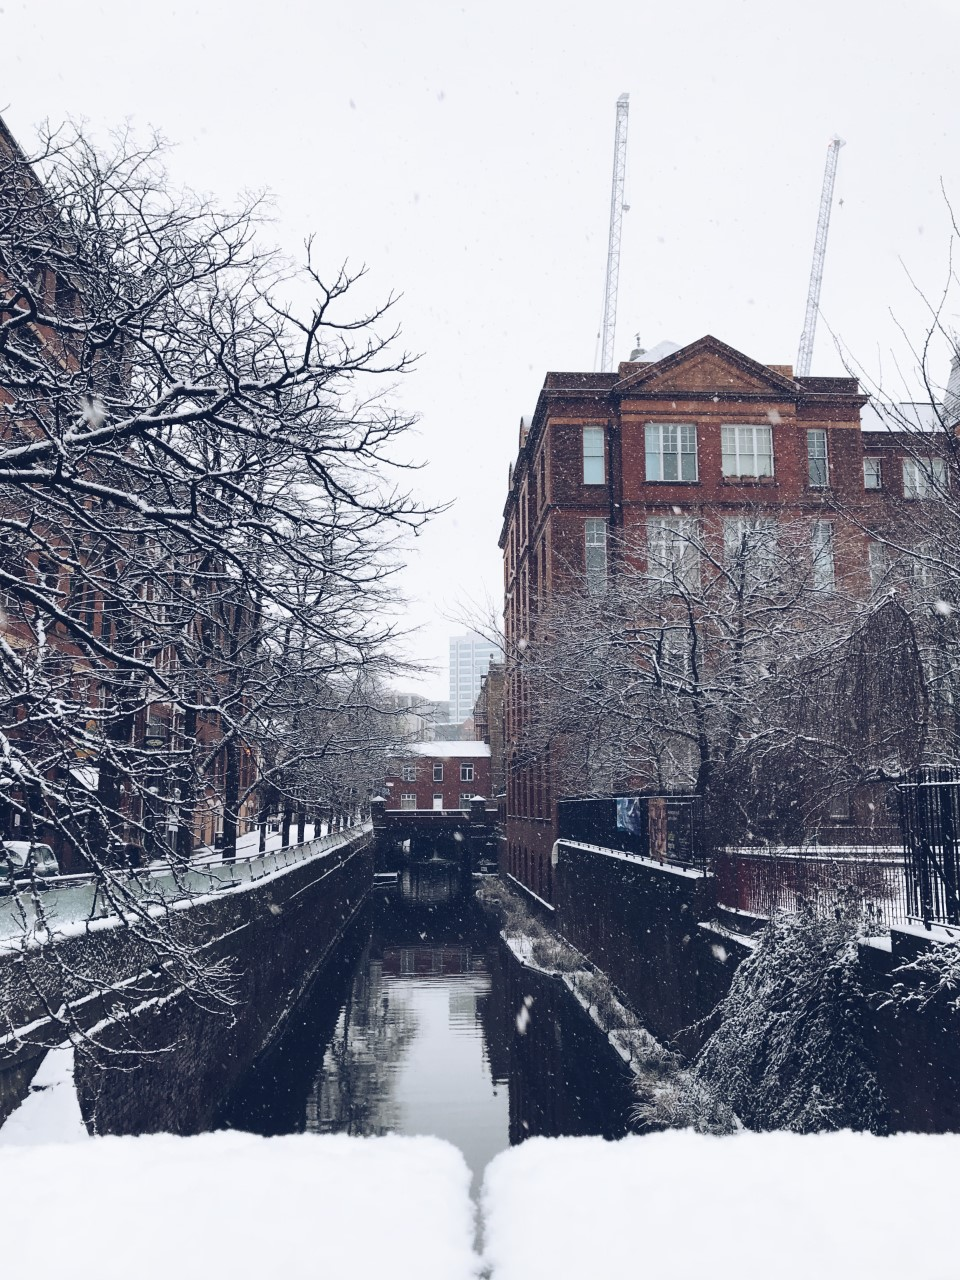 Canal street, Manchester in the snow.